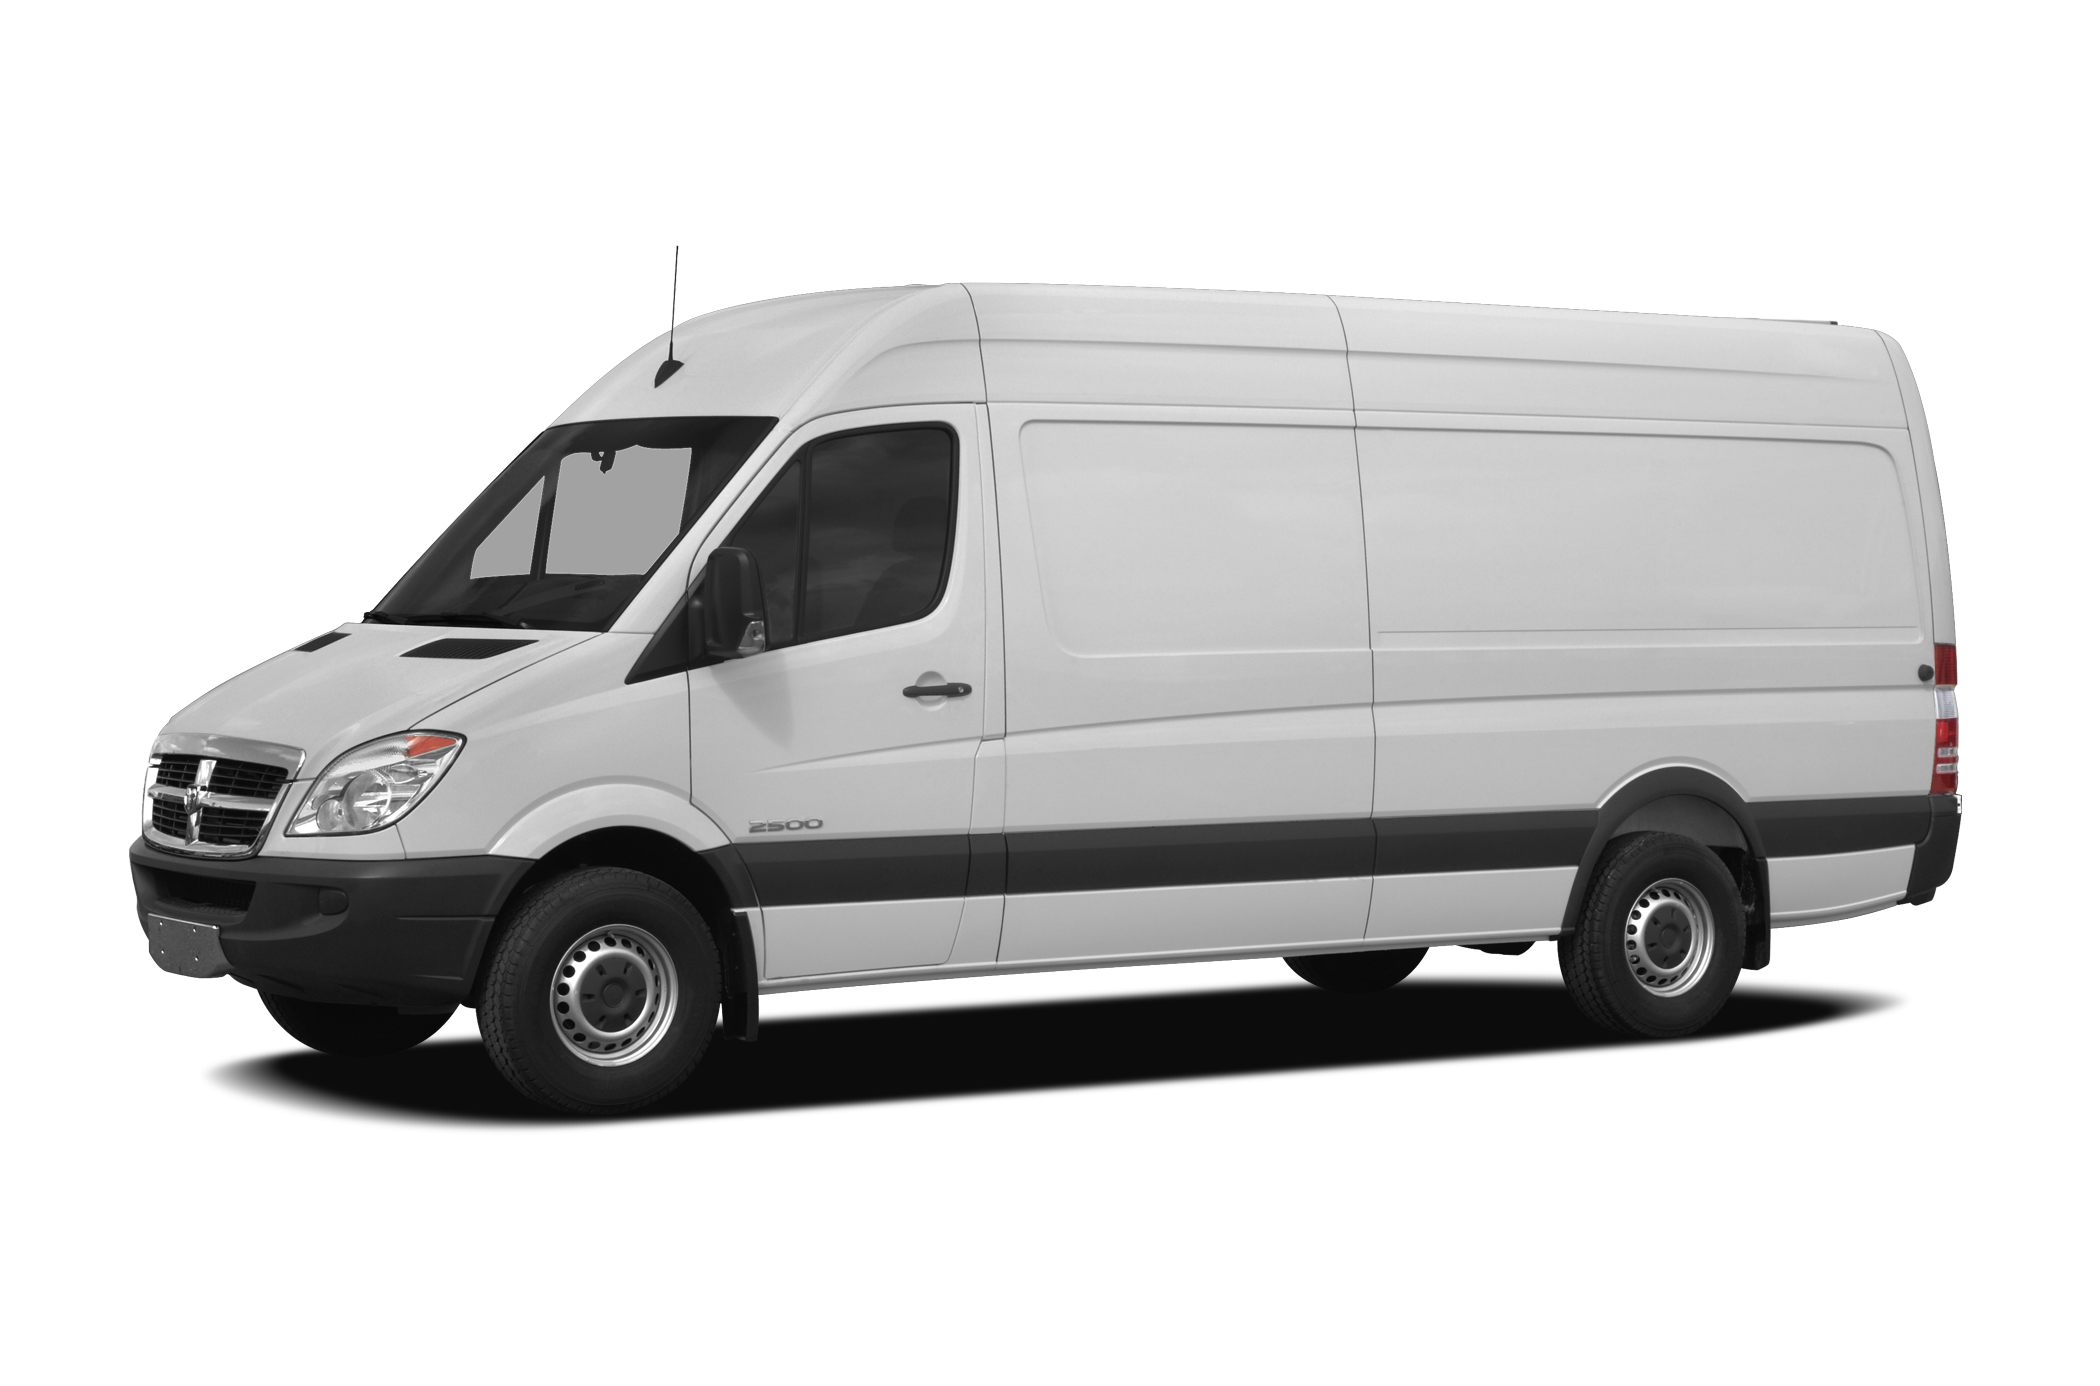 2007 Dodge Sprinter 2500 Cargo Van for sale in Lewisville for $9,877 with 259,276 miles.